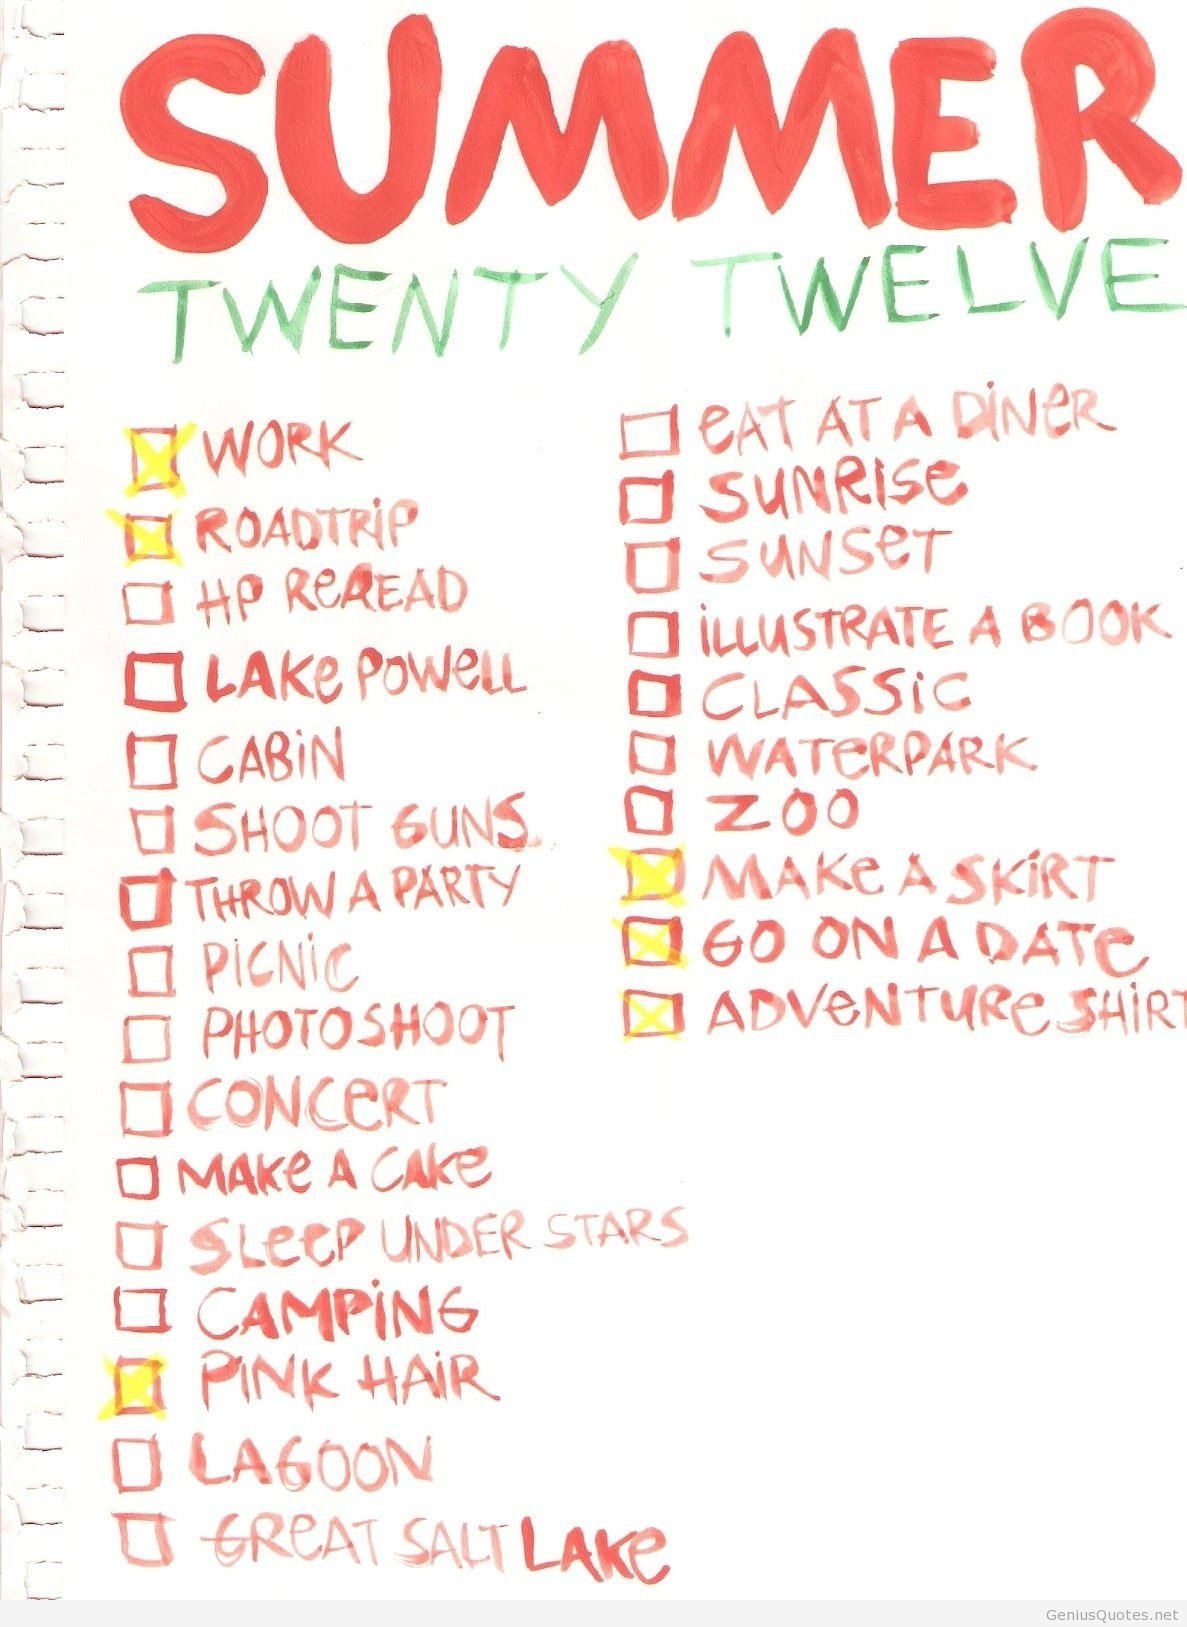 10 Amazing Summer Bucket List Ideas For Couples summer bucketlist quotes